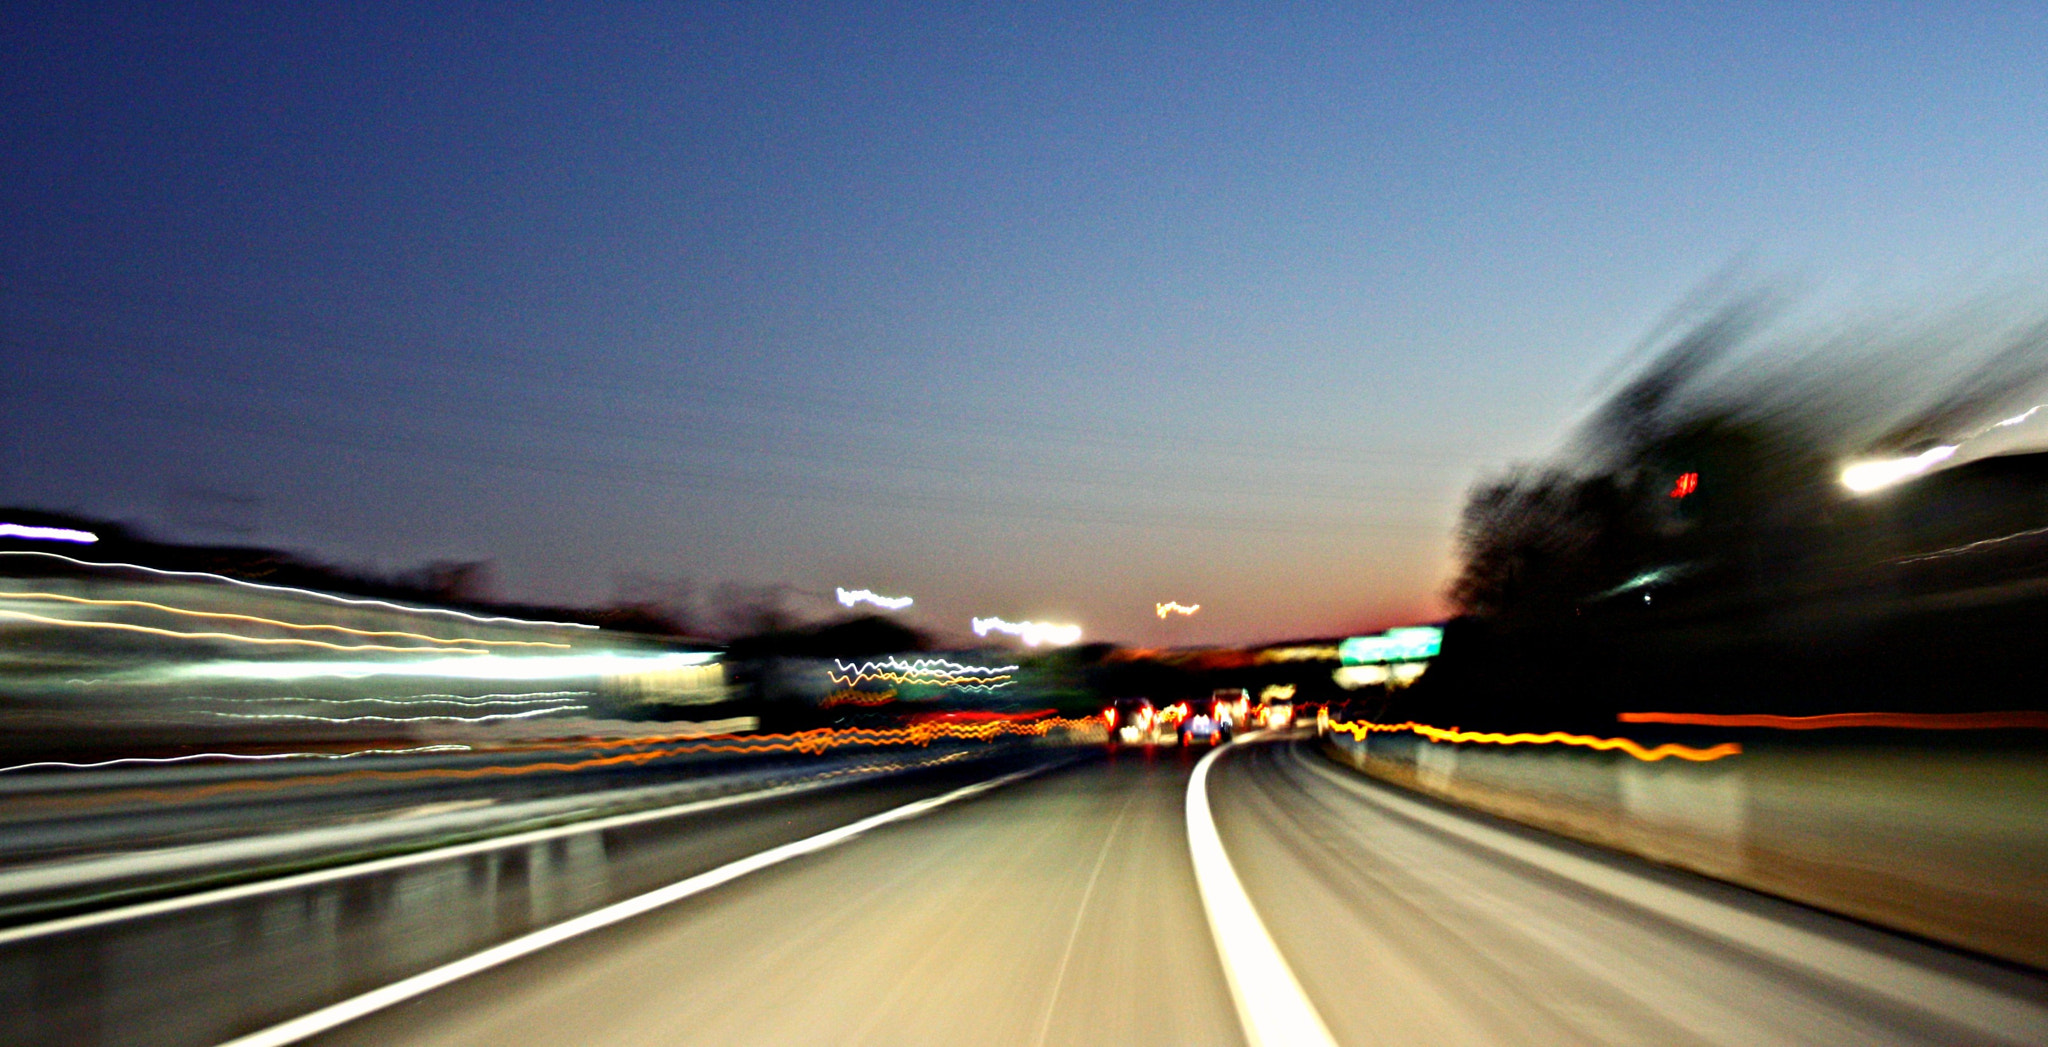 Photograph Speed by Giulia Coletta on 500px